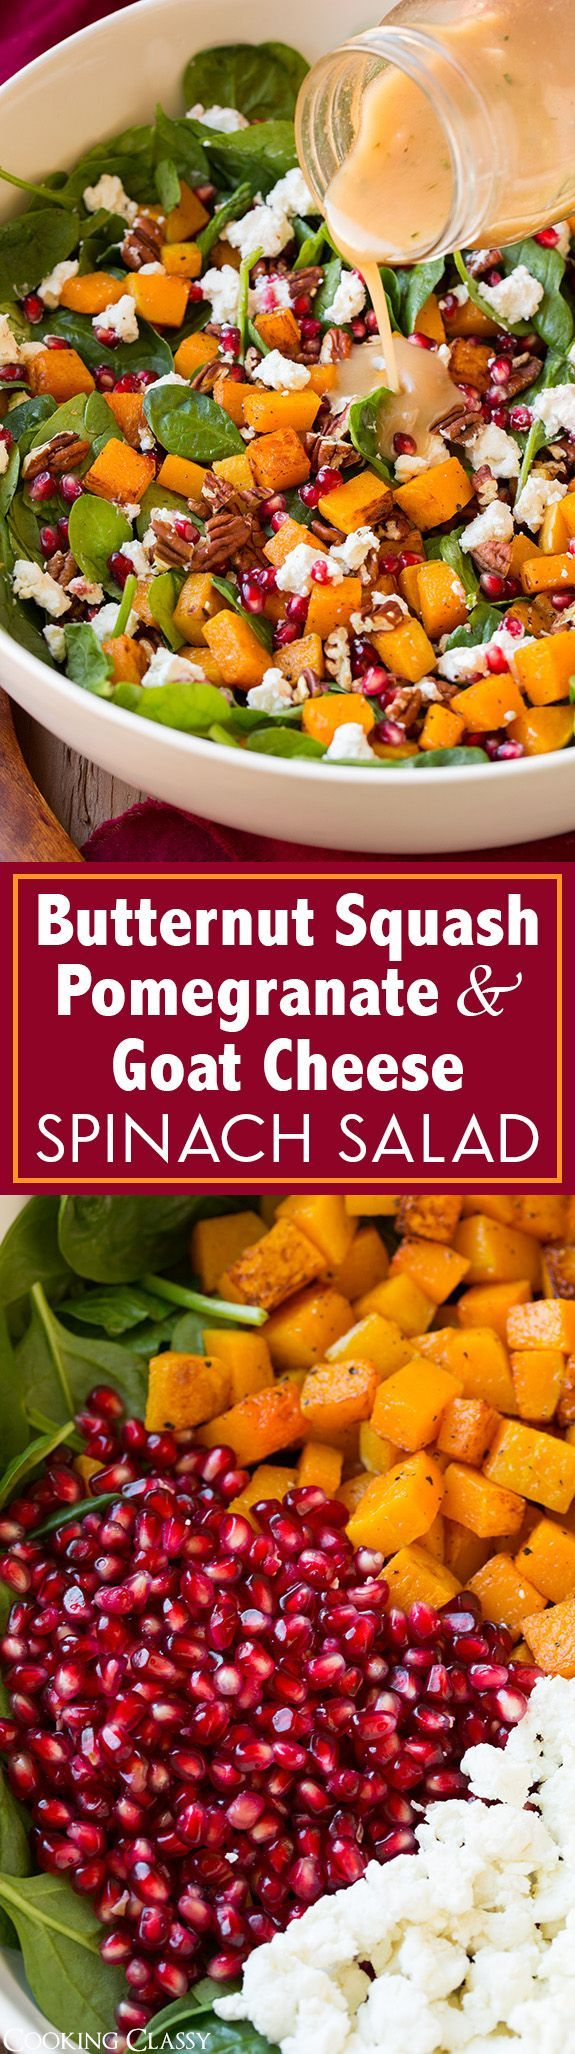 Butternut Squash, Pomegranate and Goat Cheese Spinach Salad with Red Wine Vinaigrette - definitely one of my FAVORITE fall/winter salads!! The flavors are blend perfectly. (Butternut Squash Recipes)